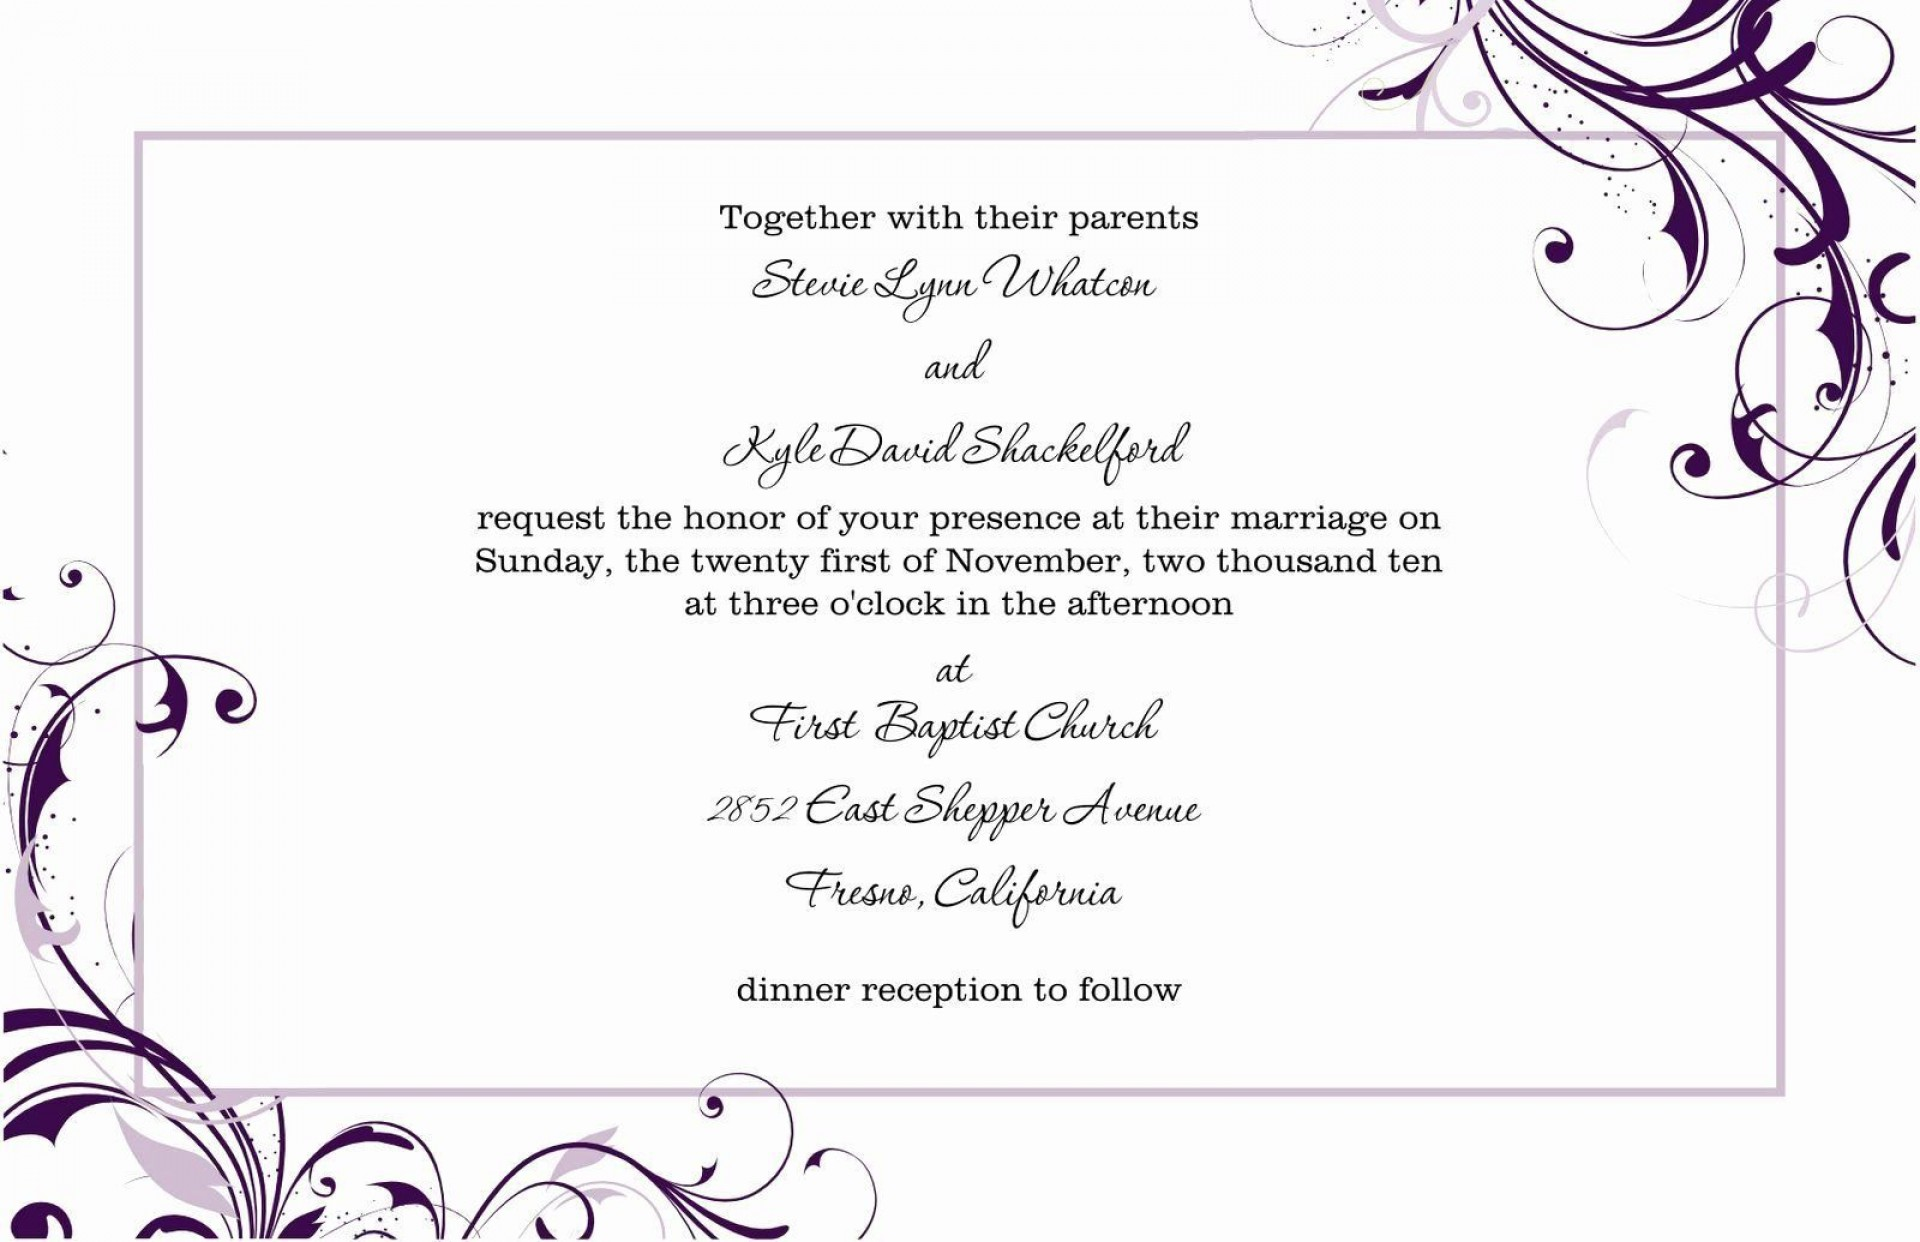 000 Best Free Wedding Invitation Template For Word 2019 Concept 1920